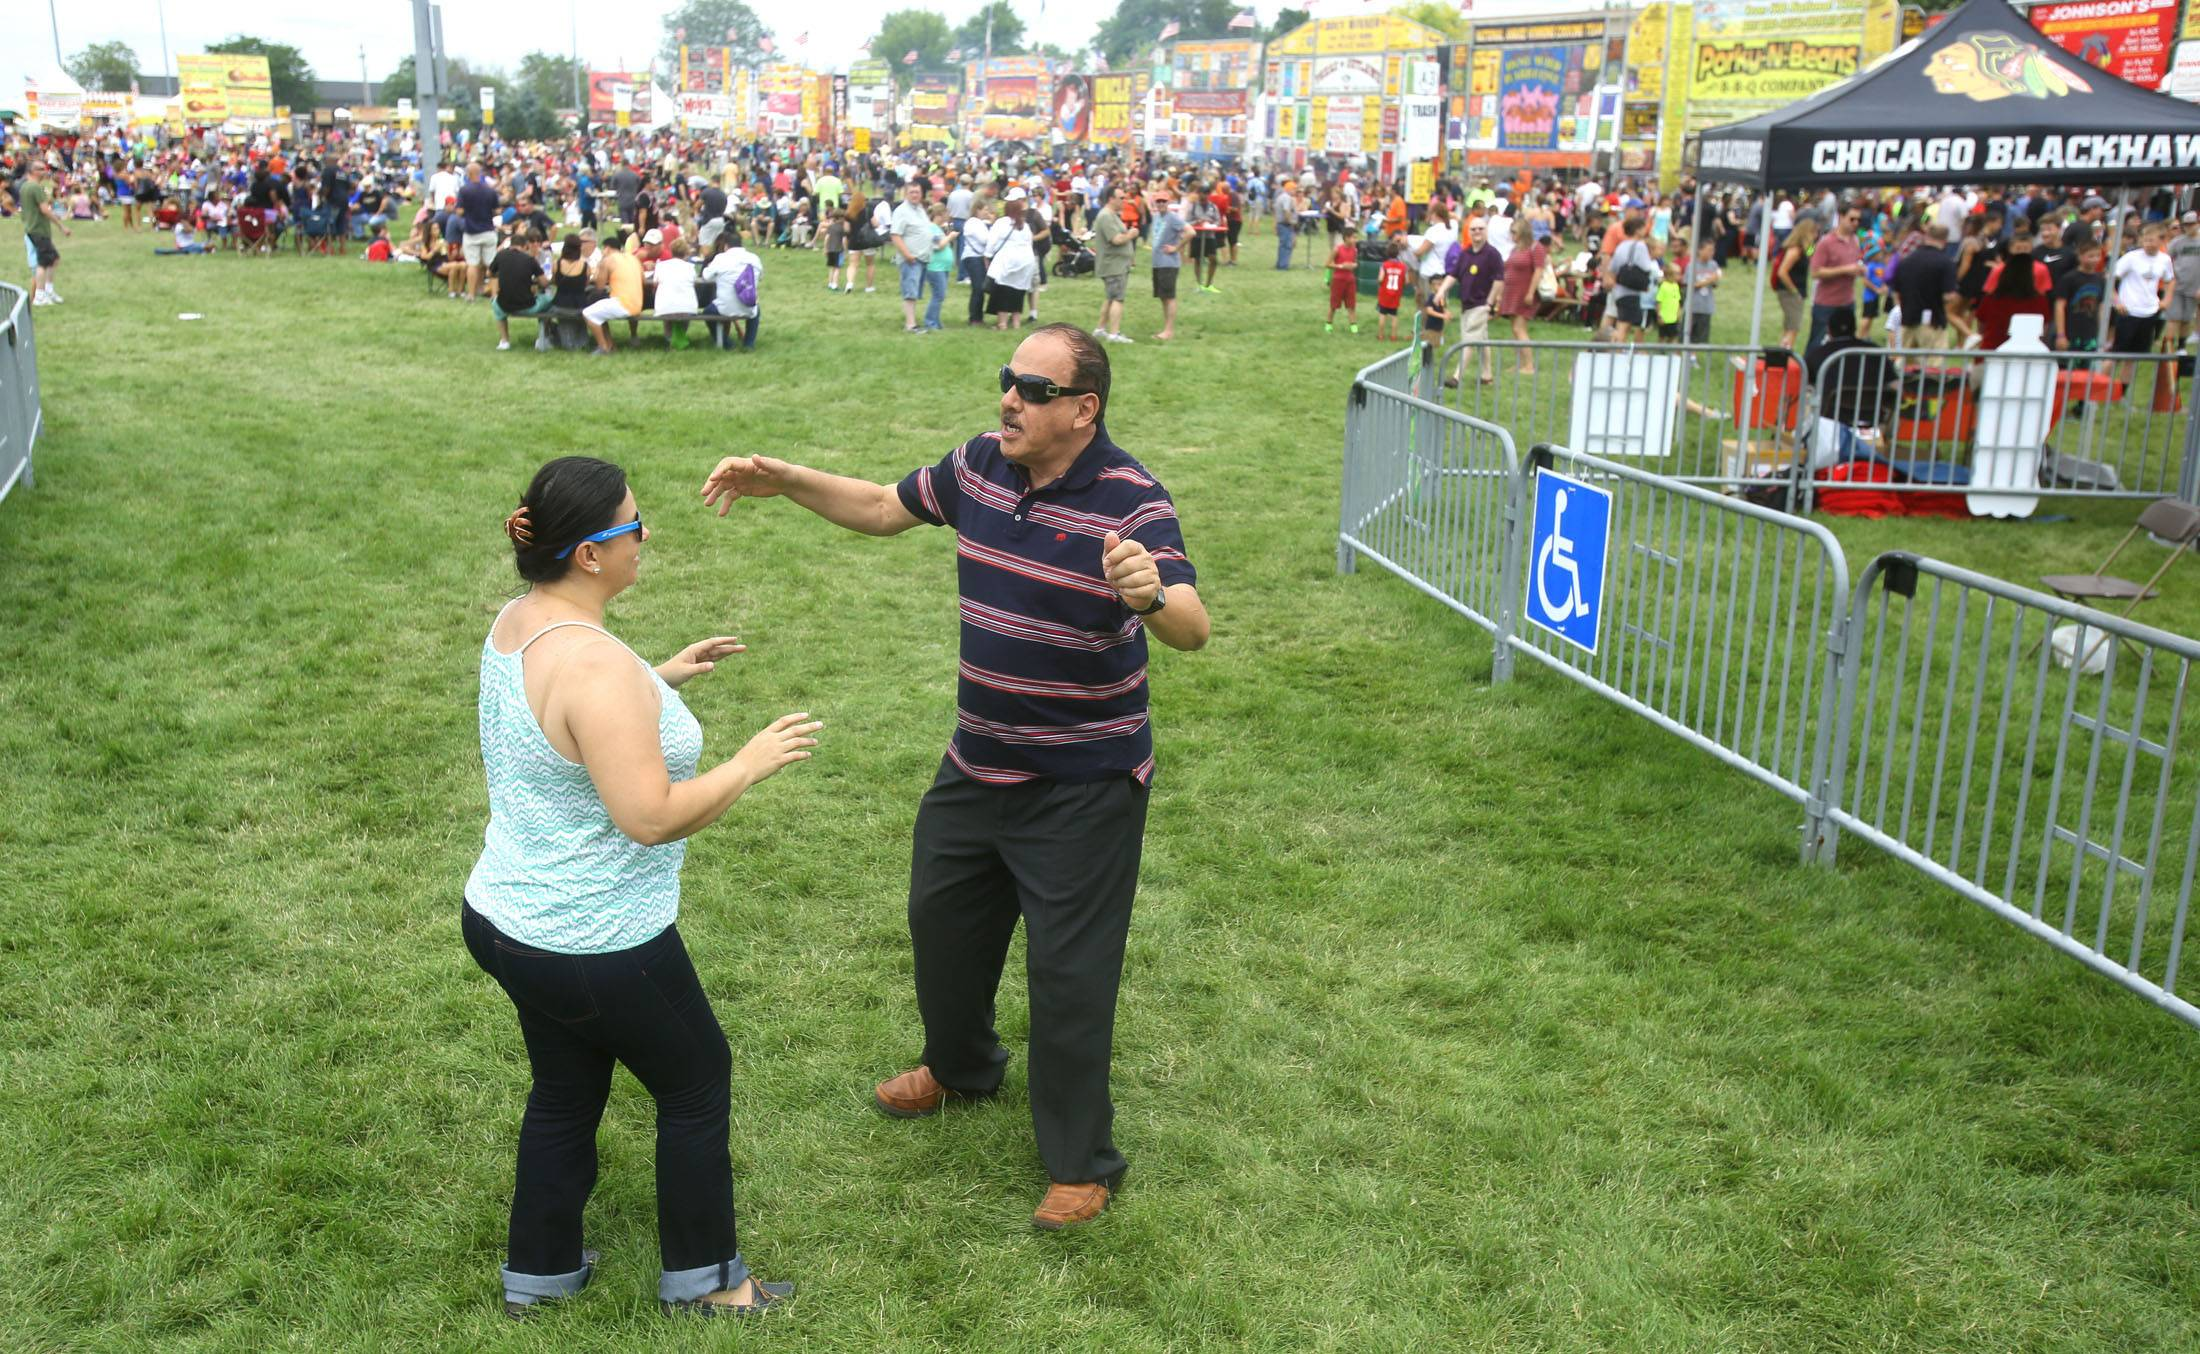 Leonor Castro and Pedro Sanchez dance to the music of Rio Bamba during the first Hispanic Day at Ribfest in Naperville.